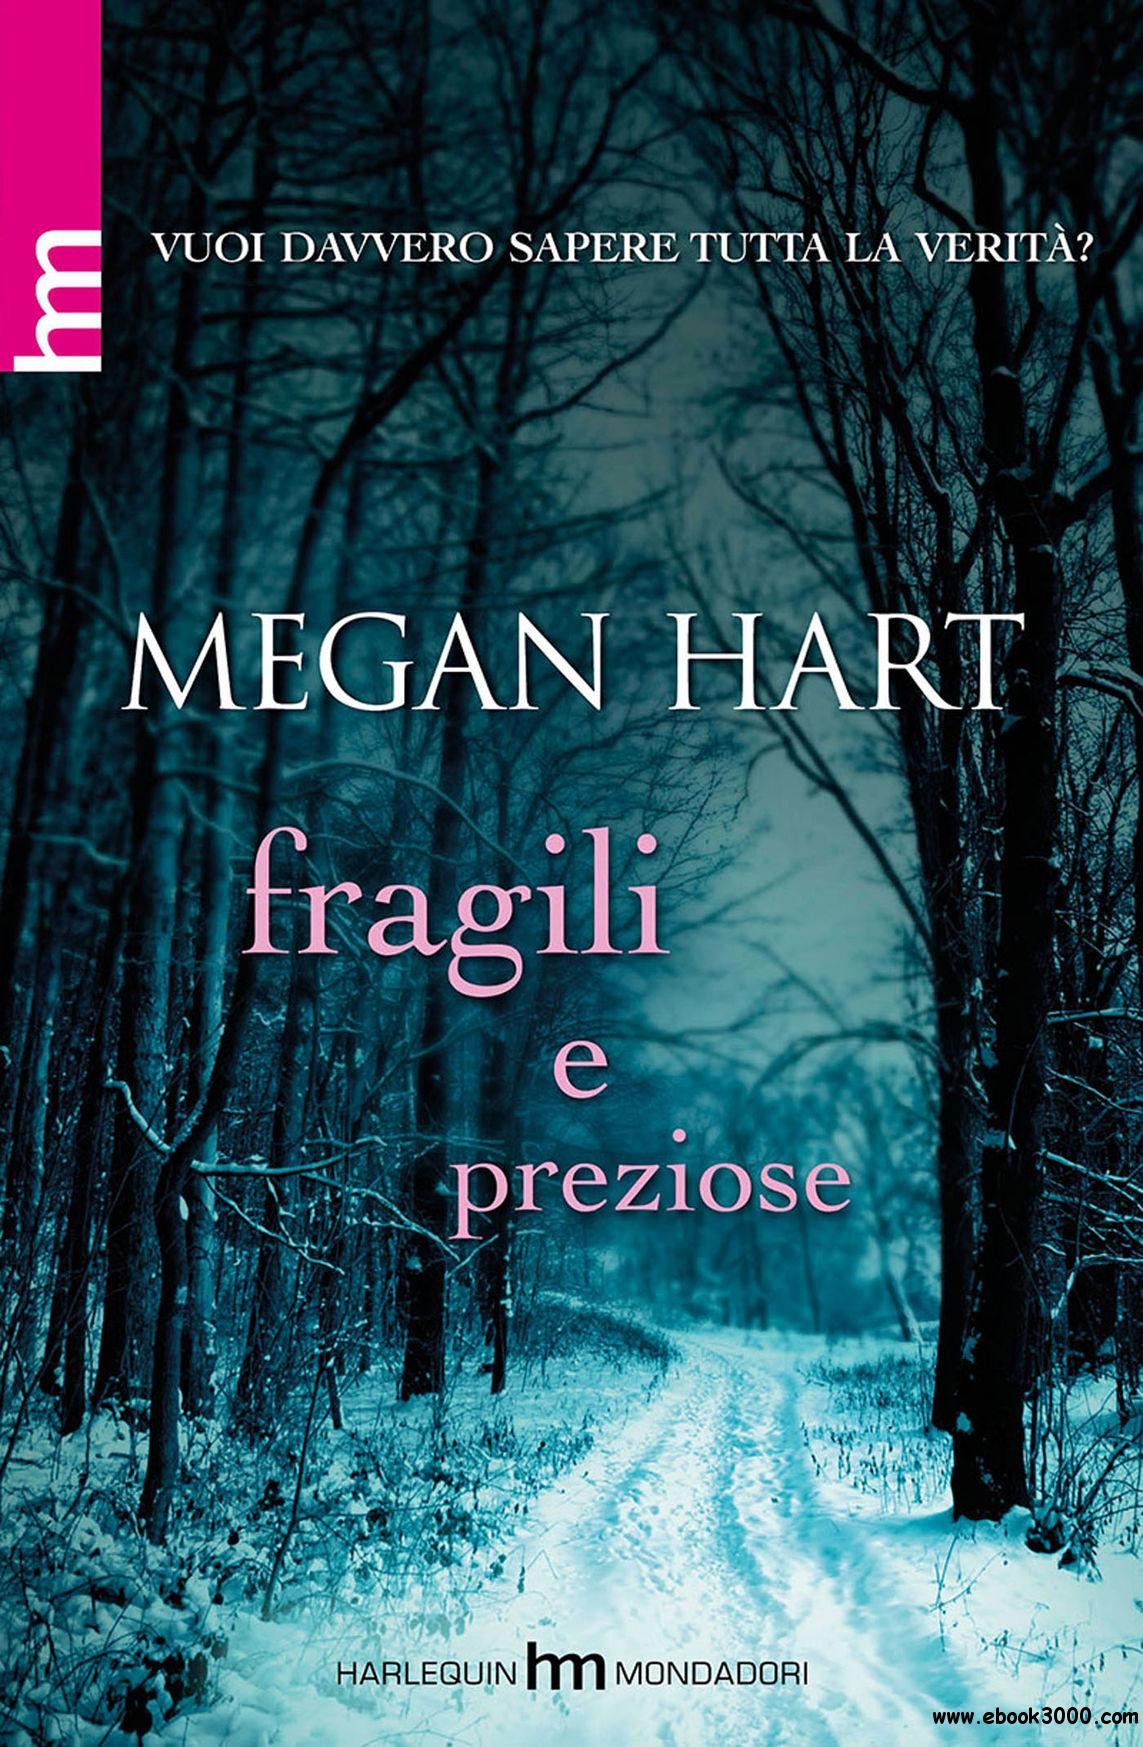 Megan Hart - fragili e preziose free download